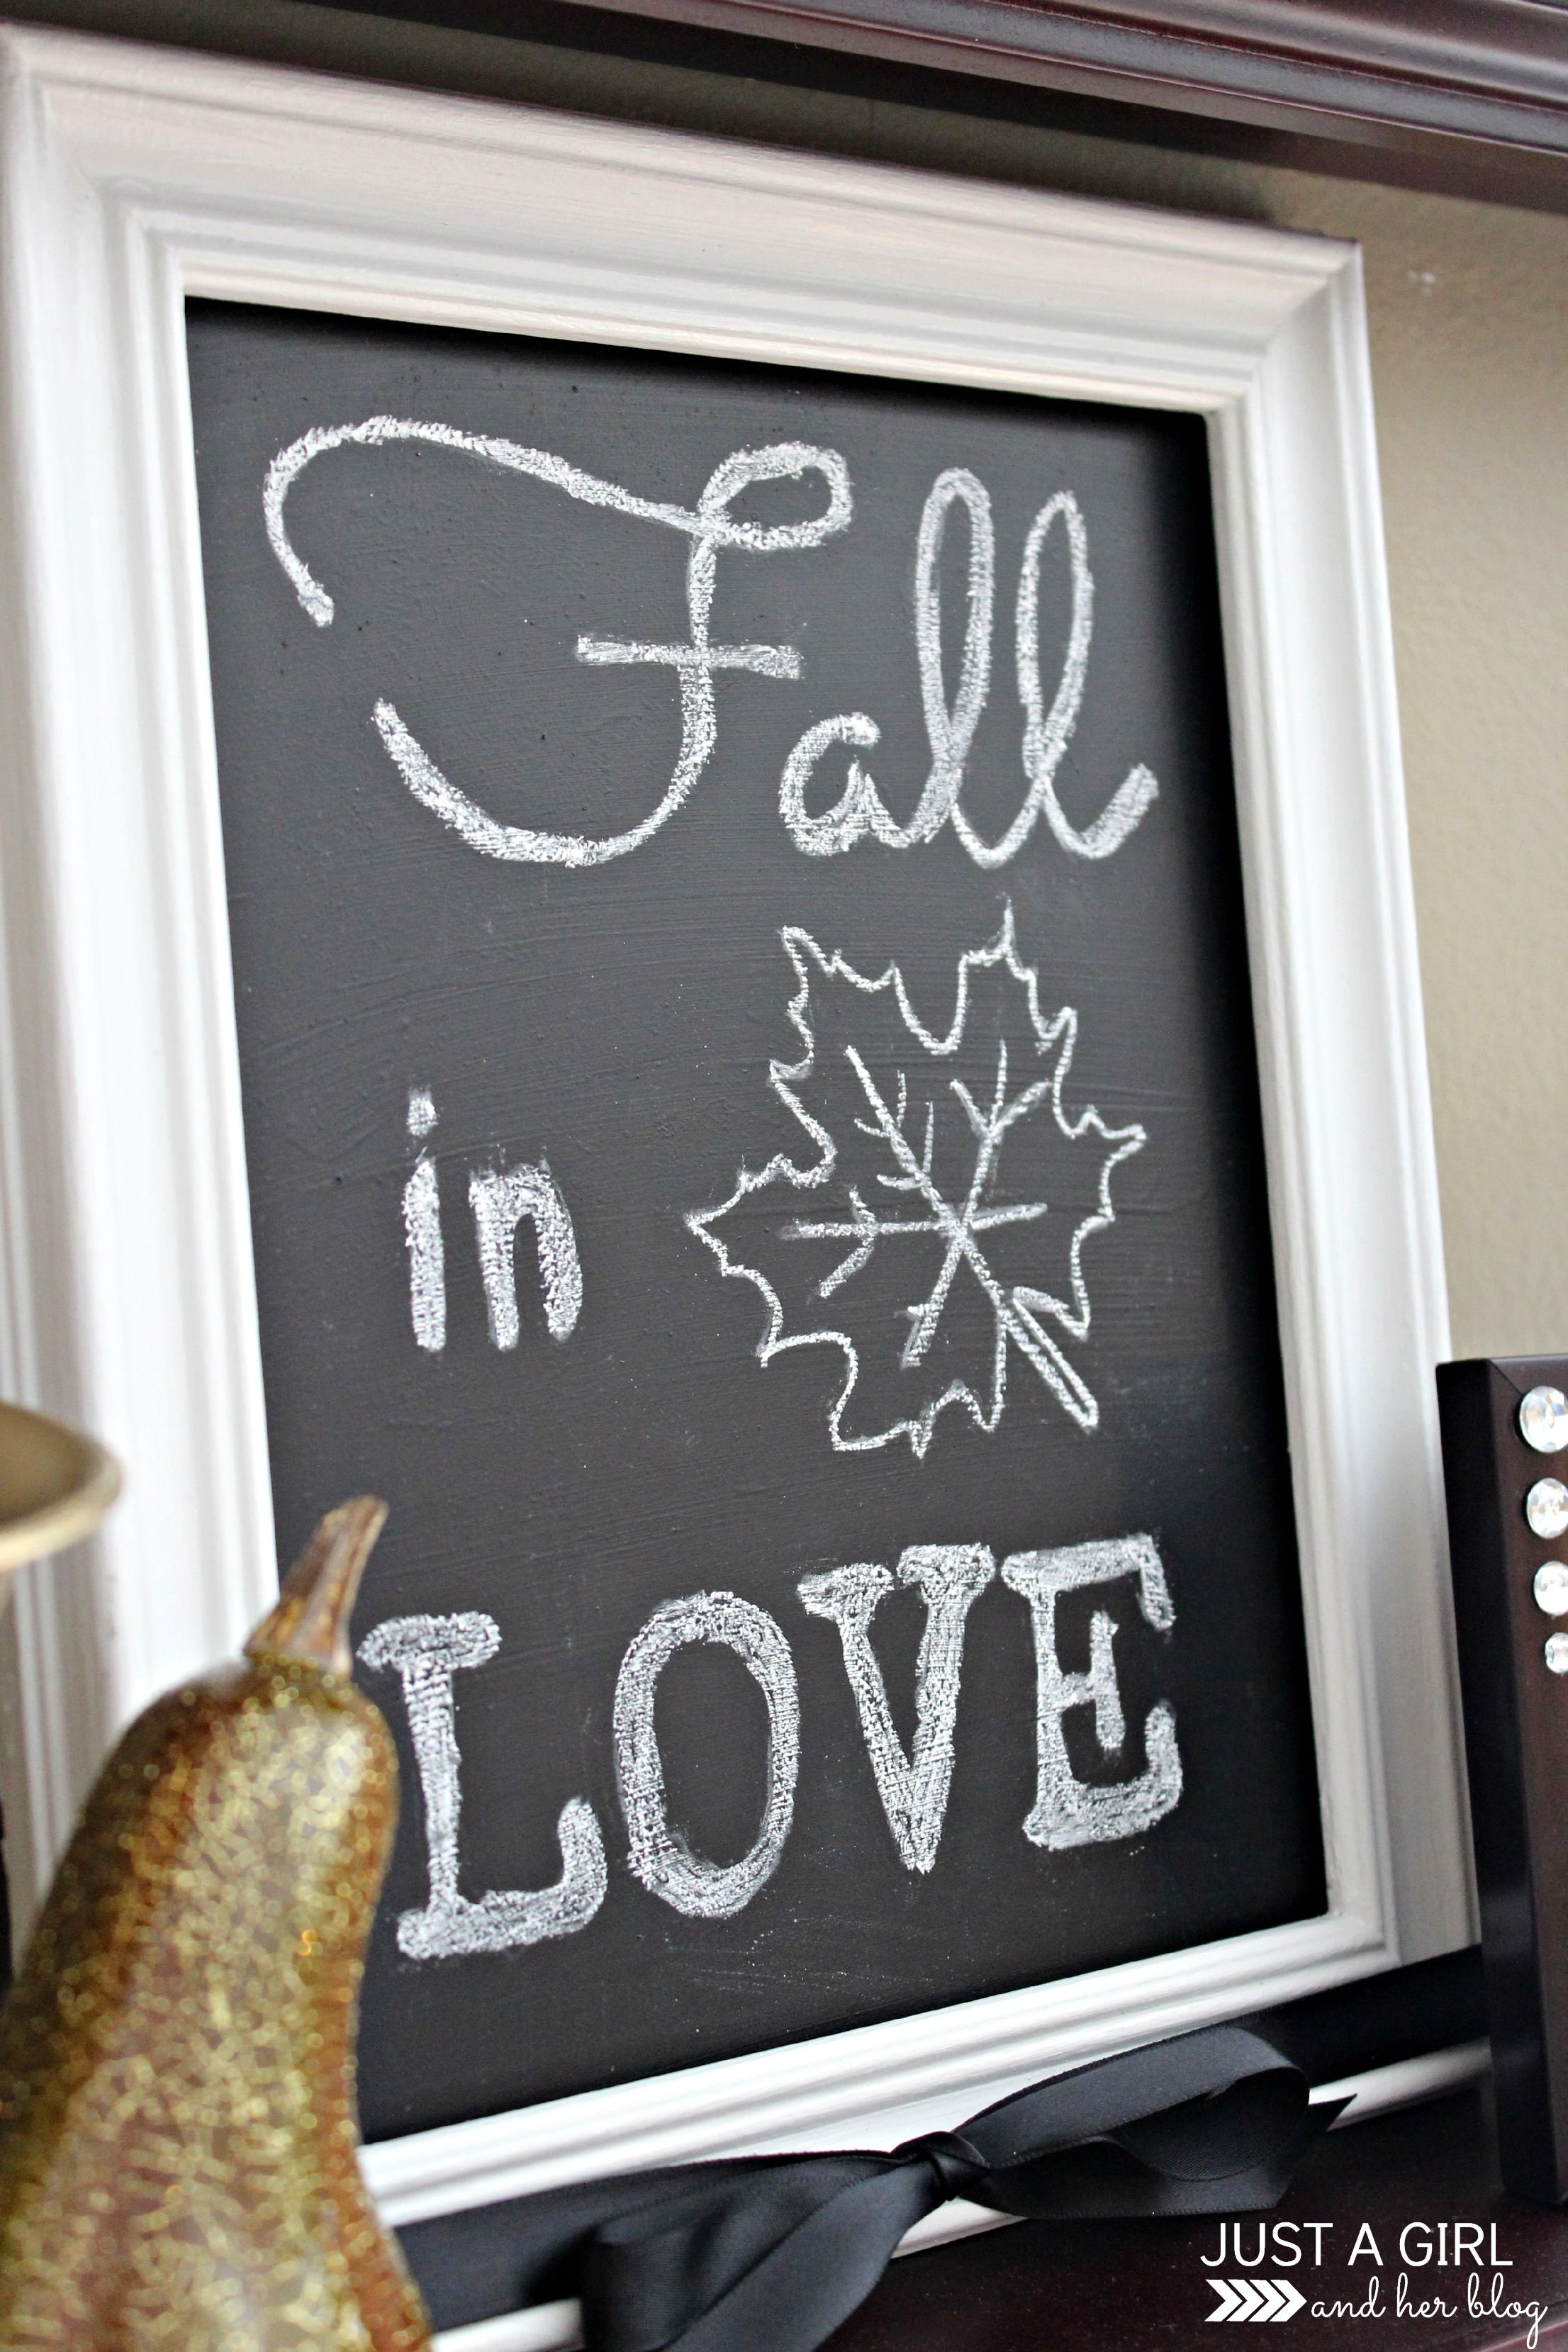 chalk design ideas - Google Search | Chalk design ideas | Pinterest ...